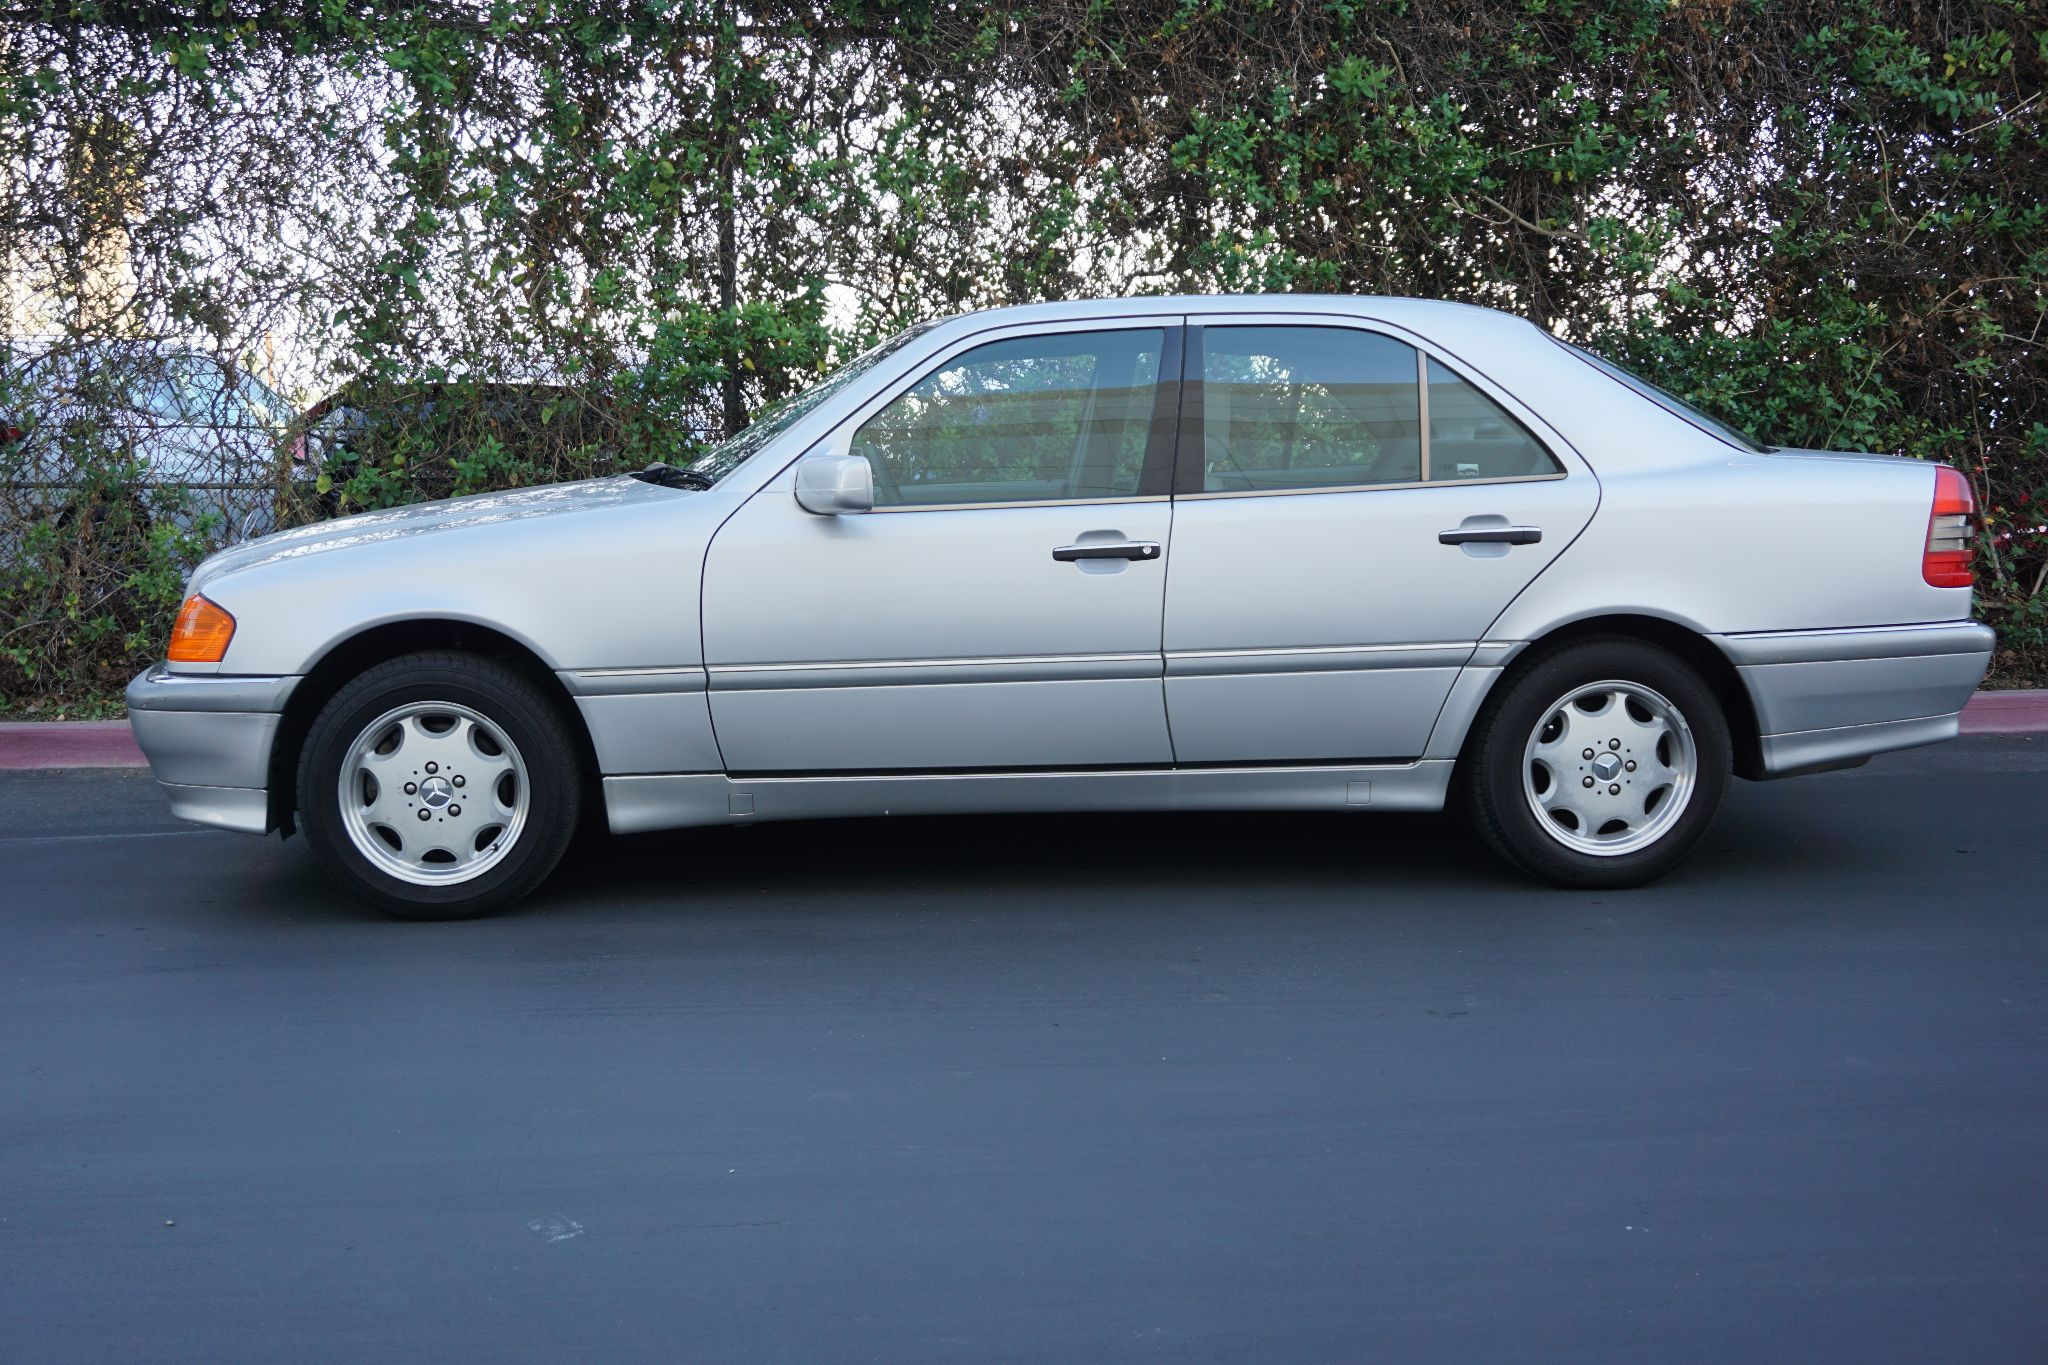 Used 1999 MercedesBenz C230 ES at City Cars Warehouse INC